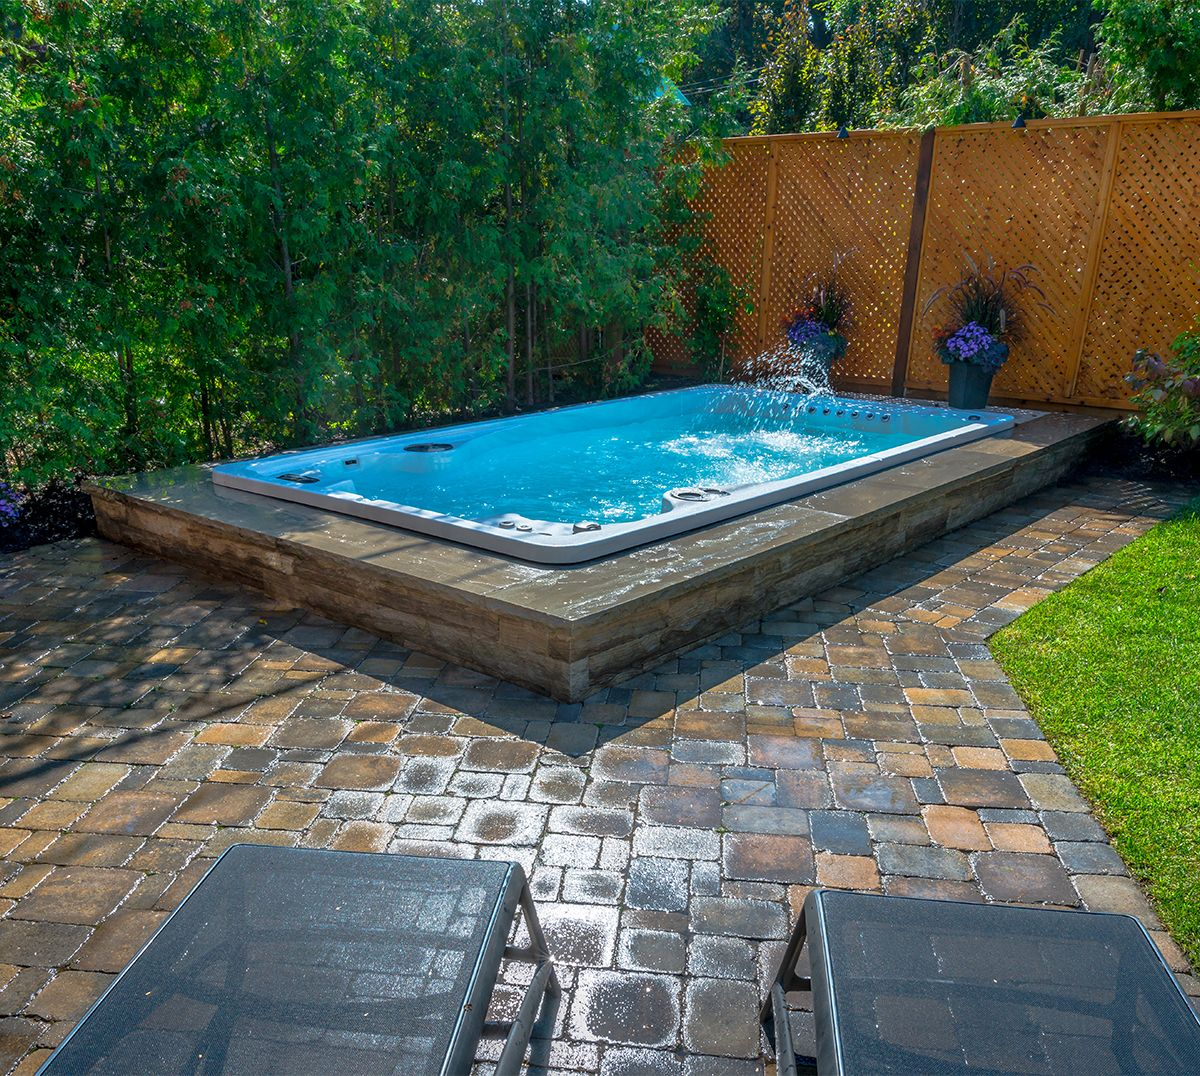 The 14fX from Hydropool Swim Spas gives you that premium, inground ...